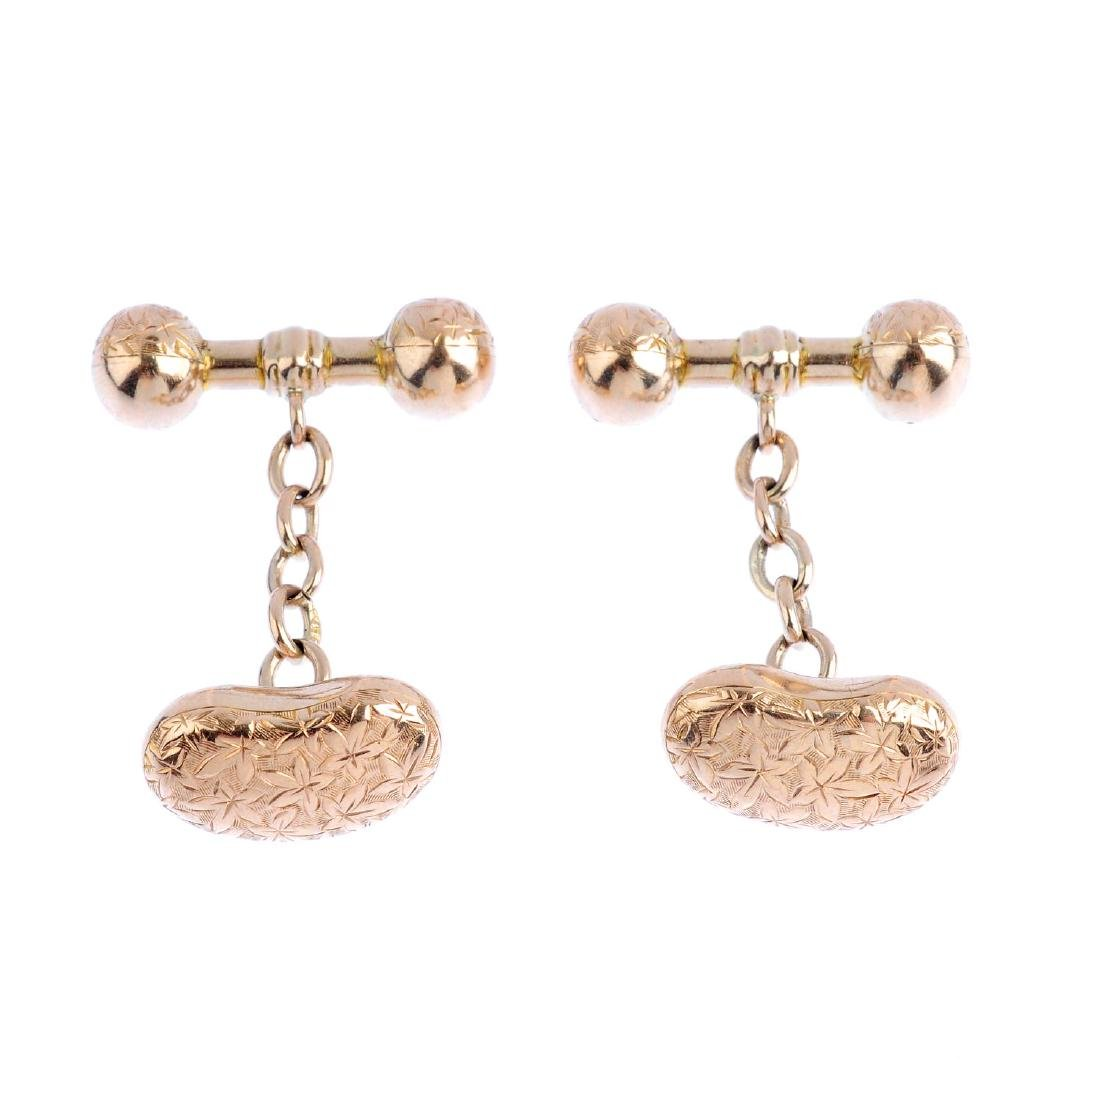 A pair of early 20th century 9ct gold cufflinks. Each